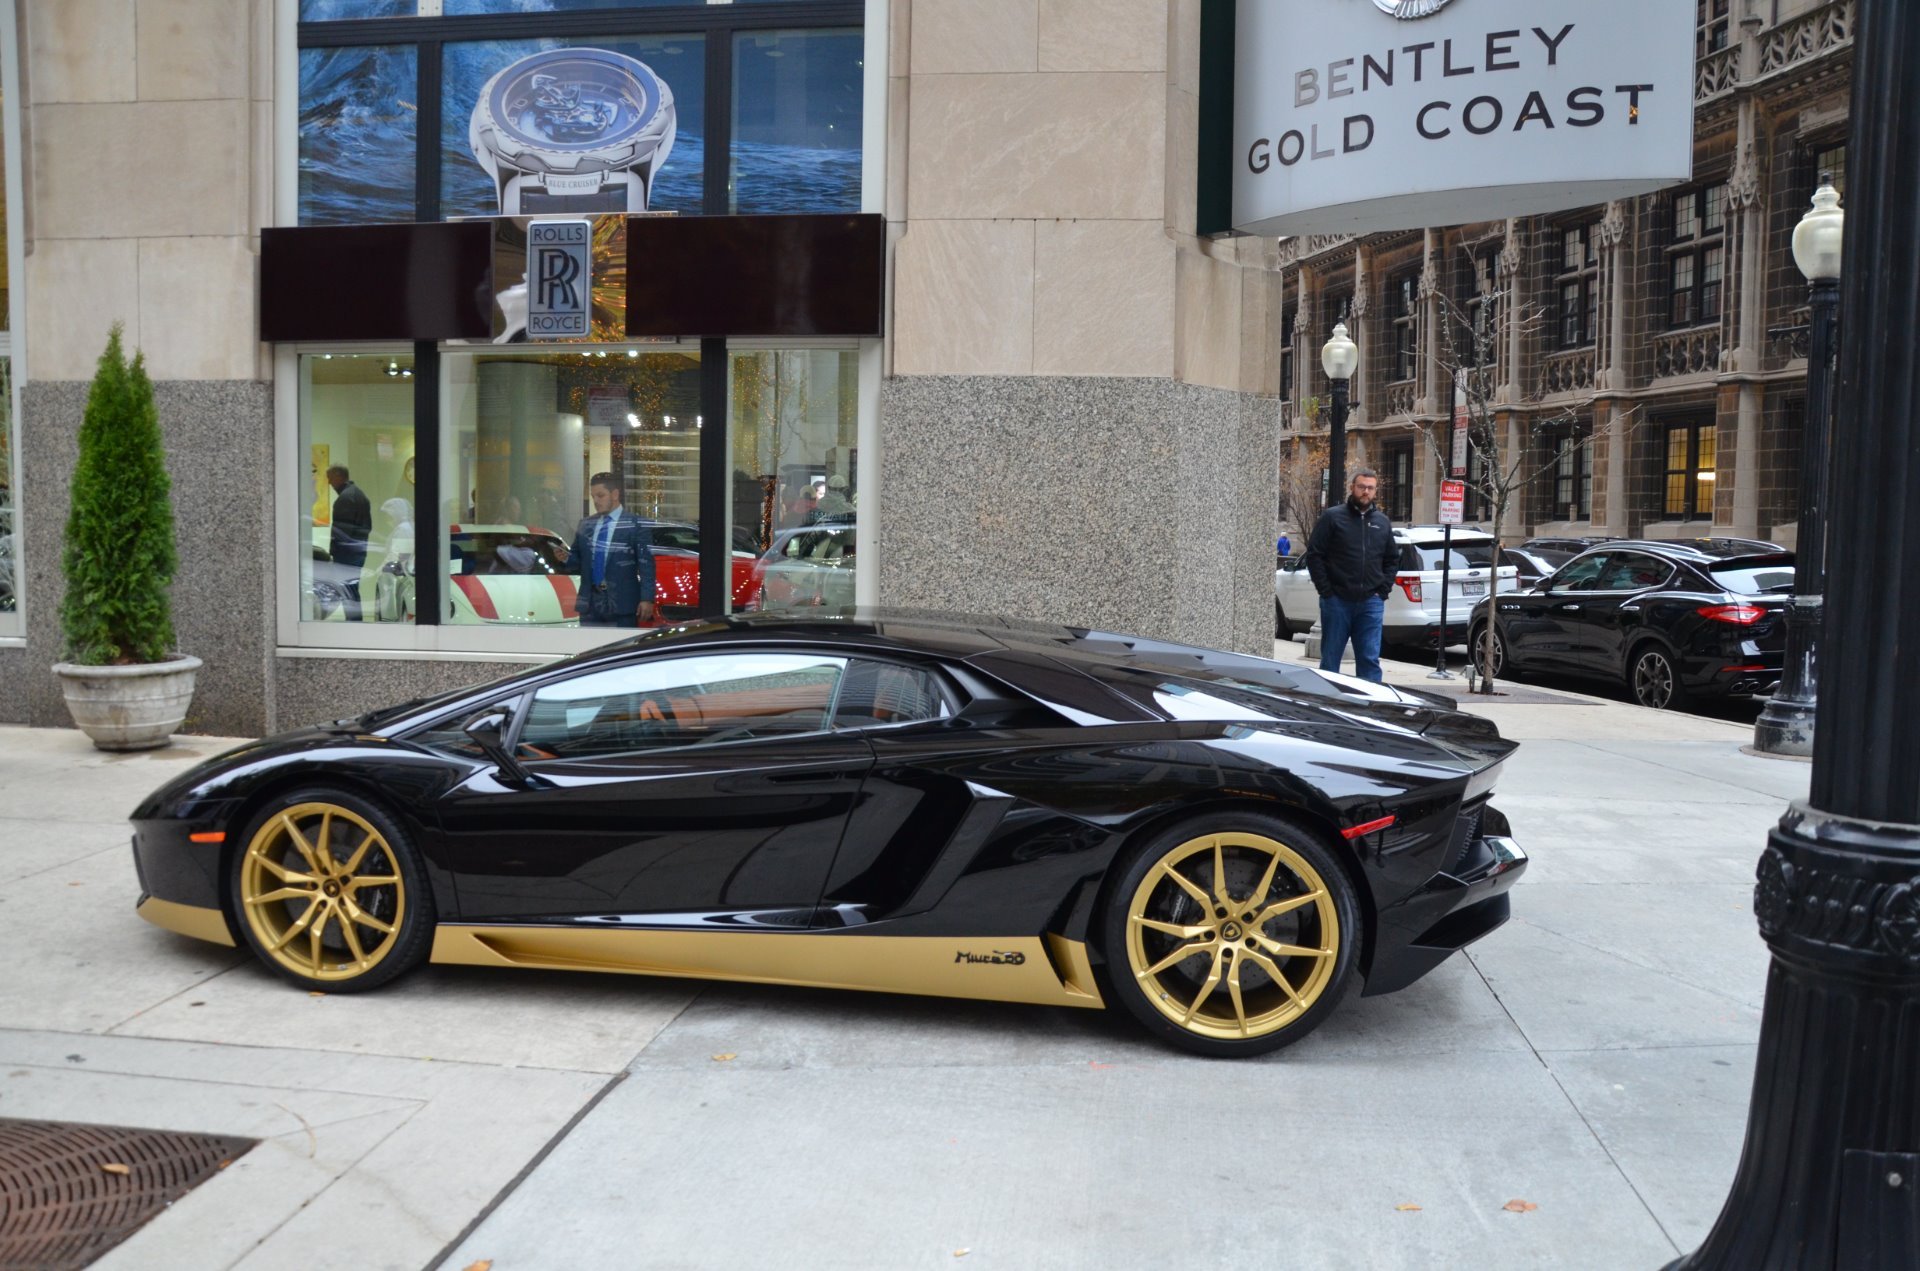 Used 2017 Lamborghini Aventador Miura Edition 1 of 50 LP 700-4 | Chicago, IL